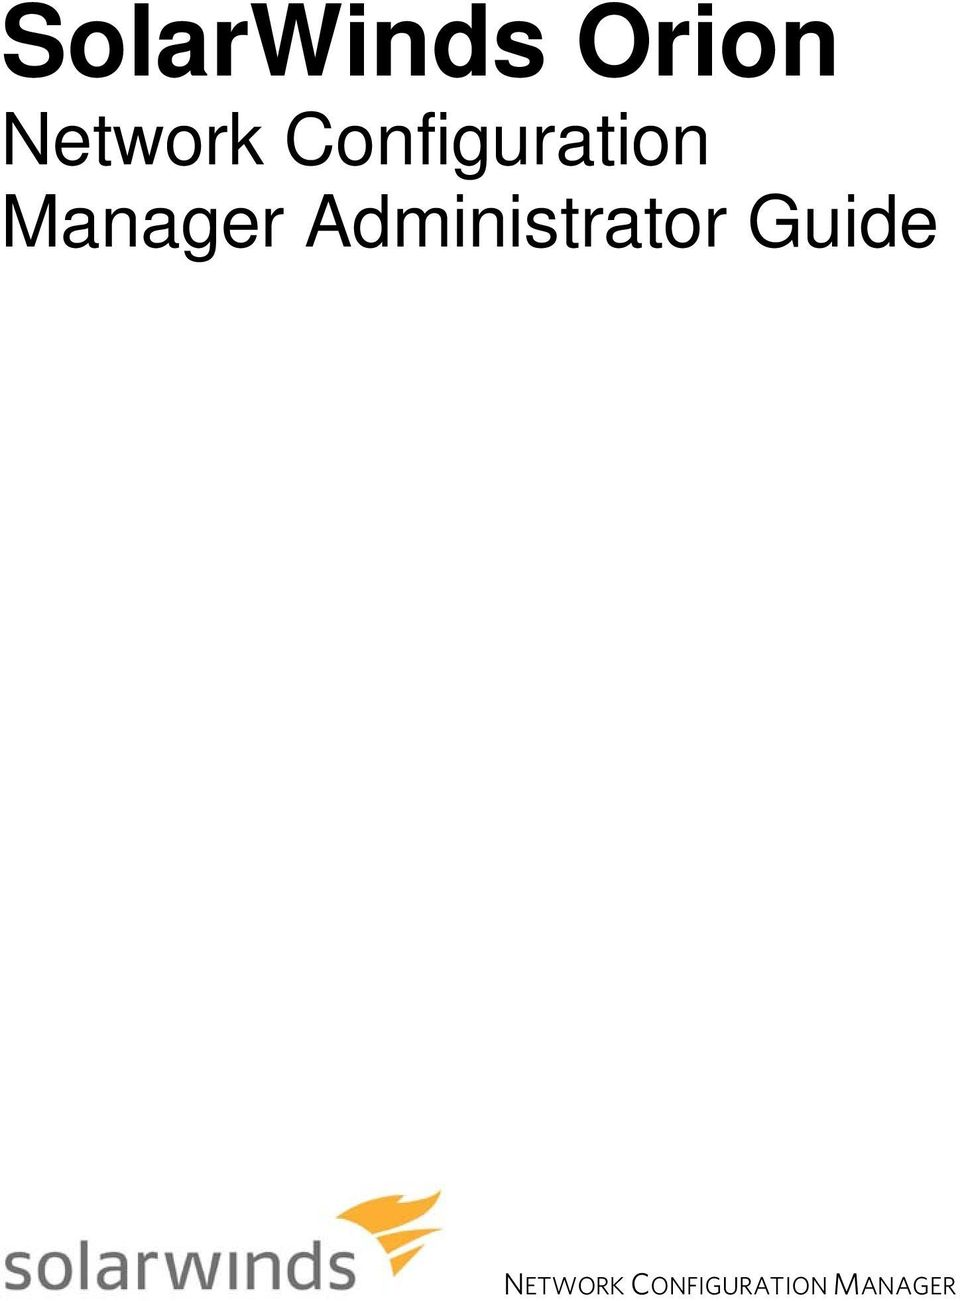 SolarWinds Orion Network Configuration Manager Administrator